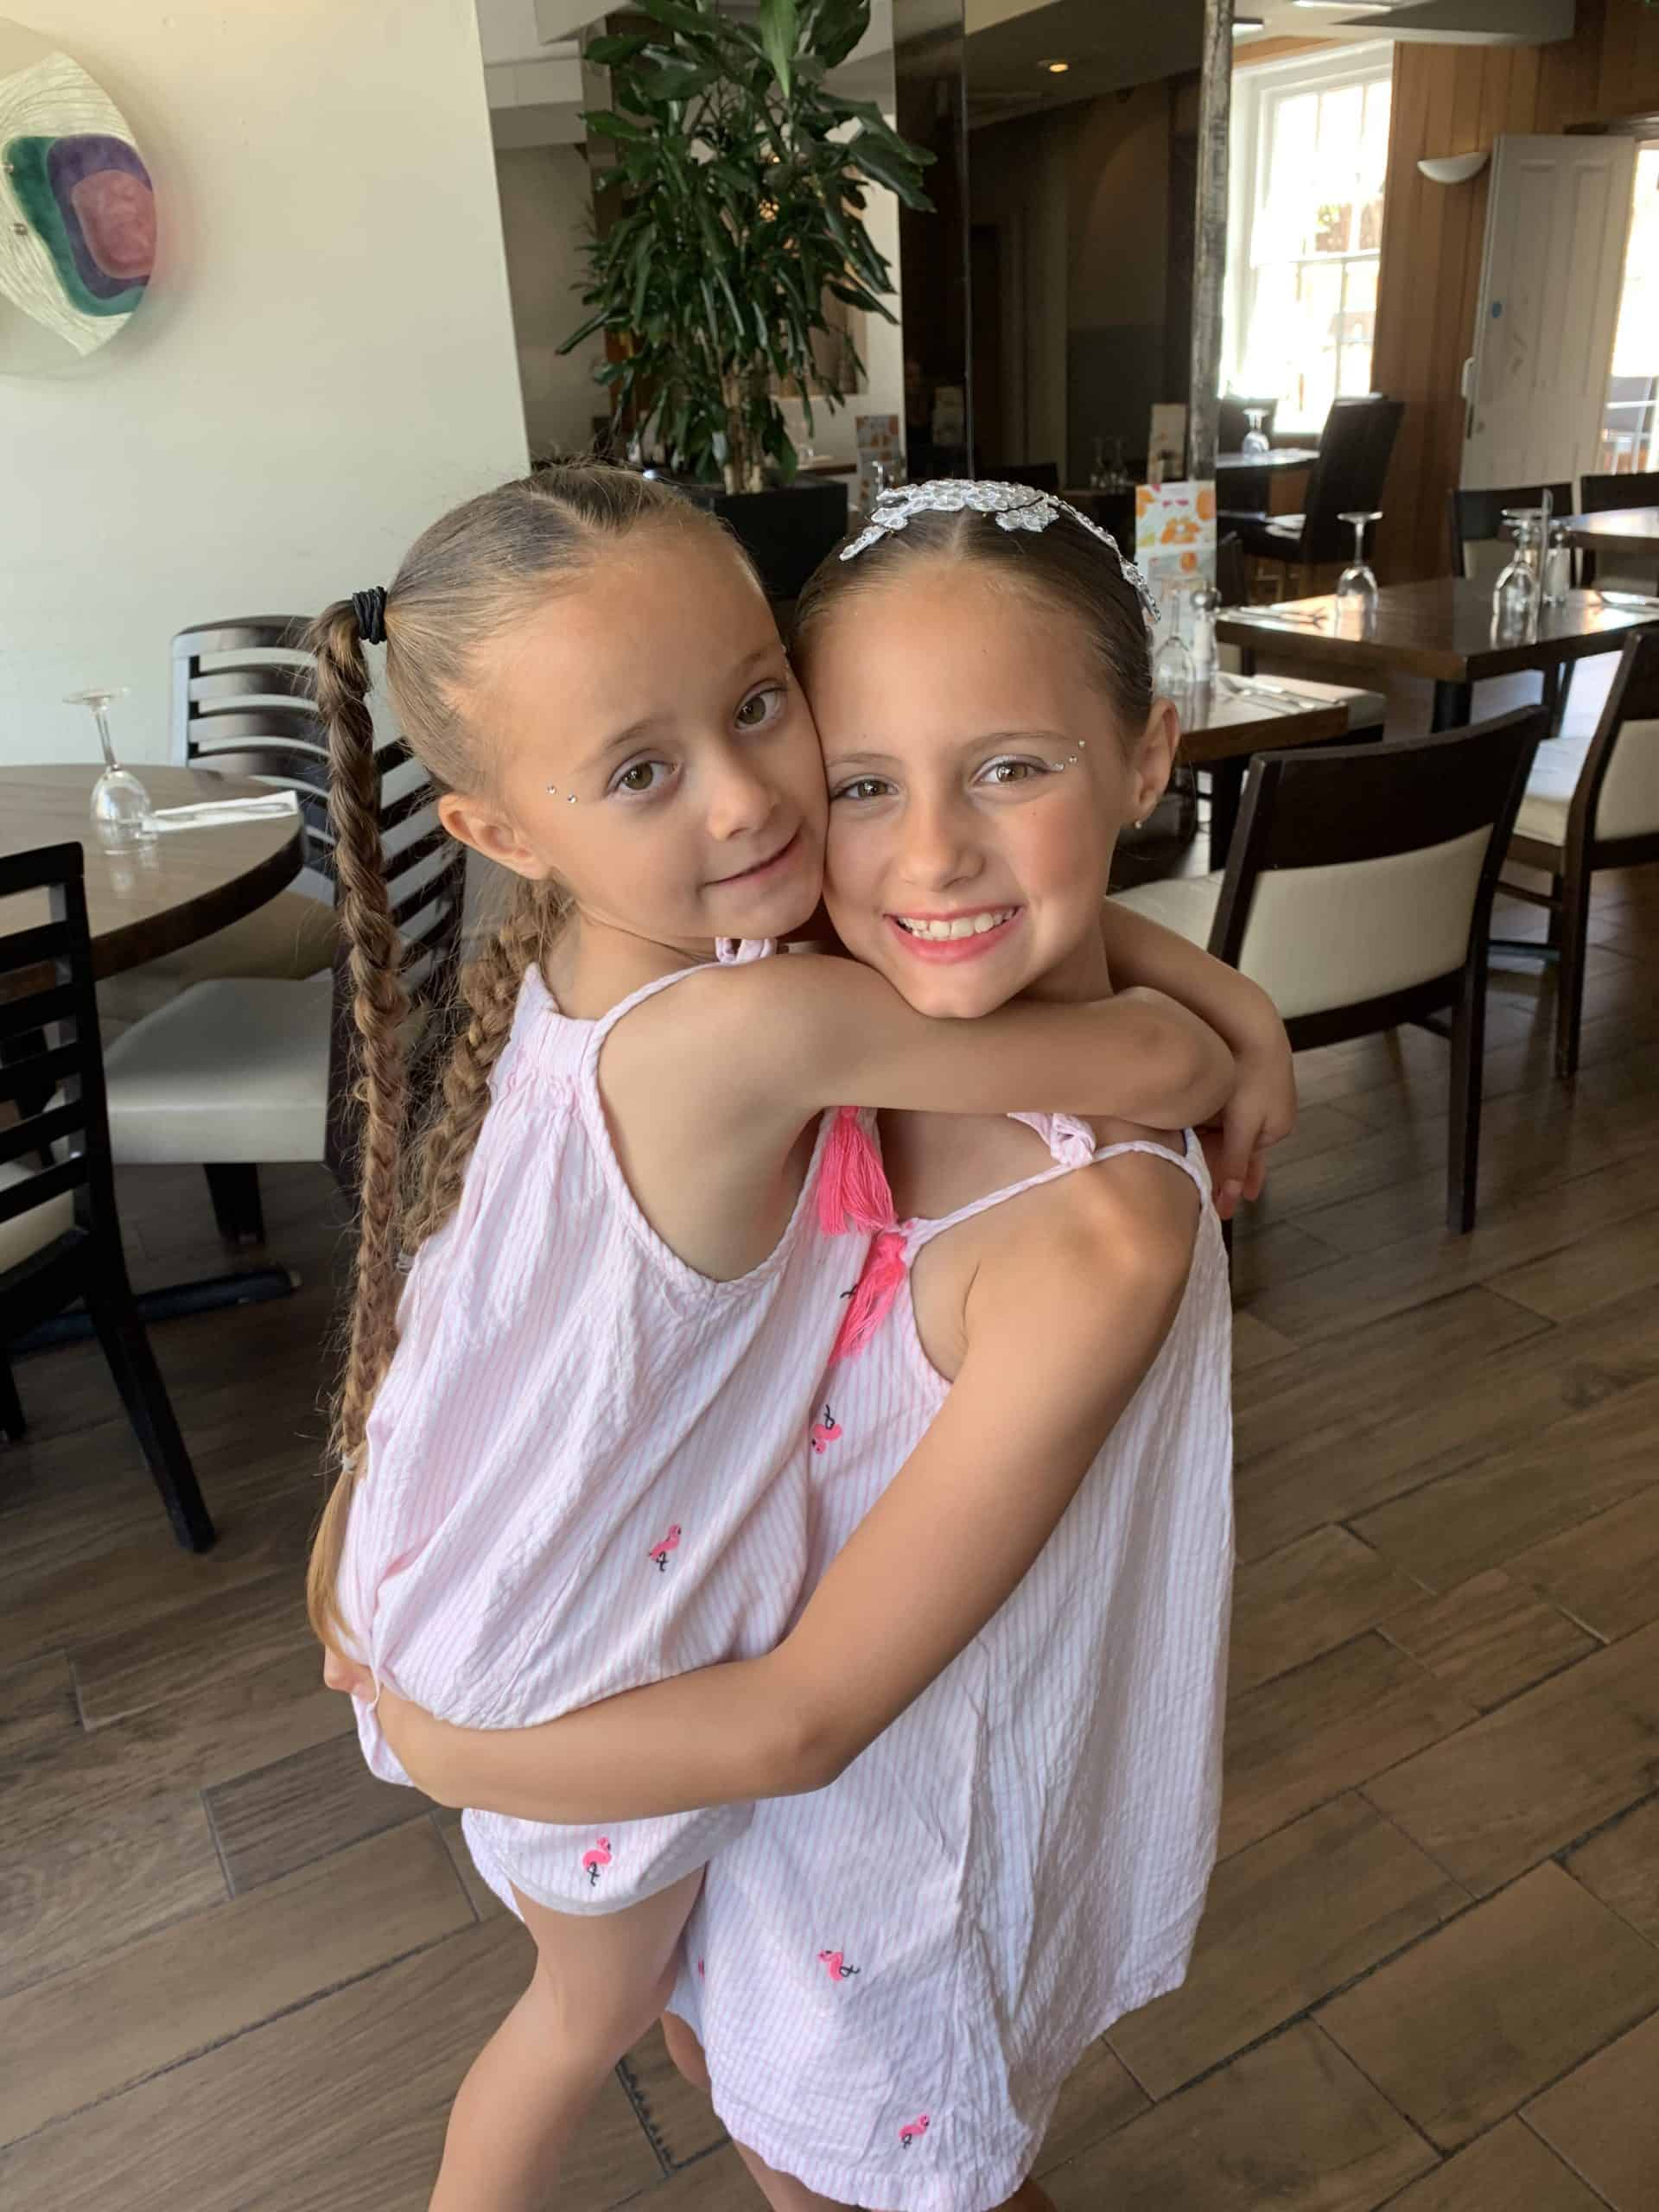 Millie and mia